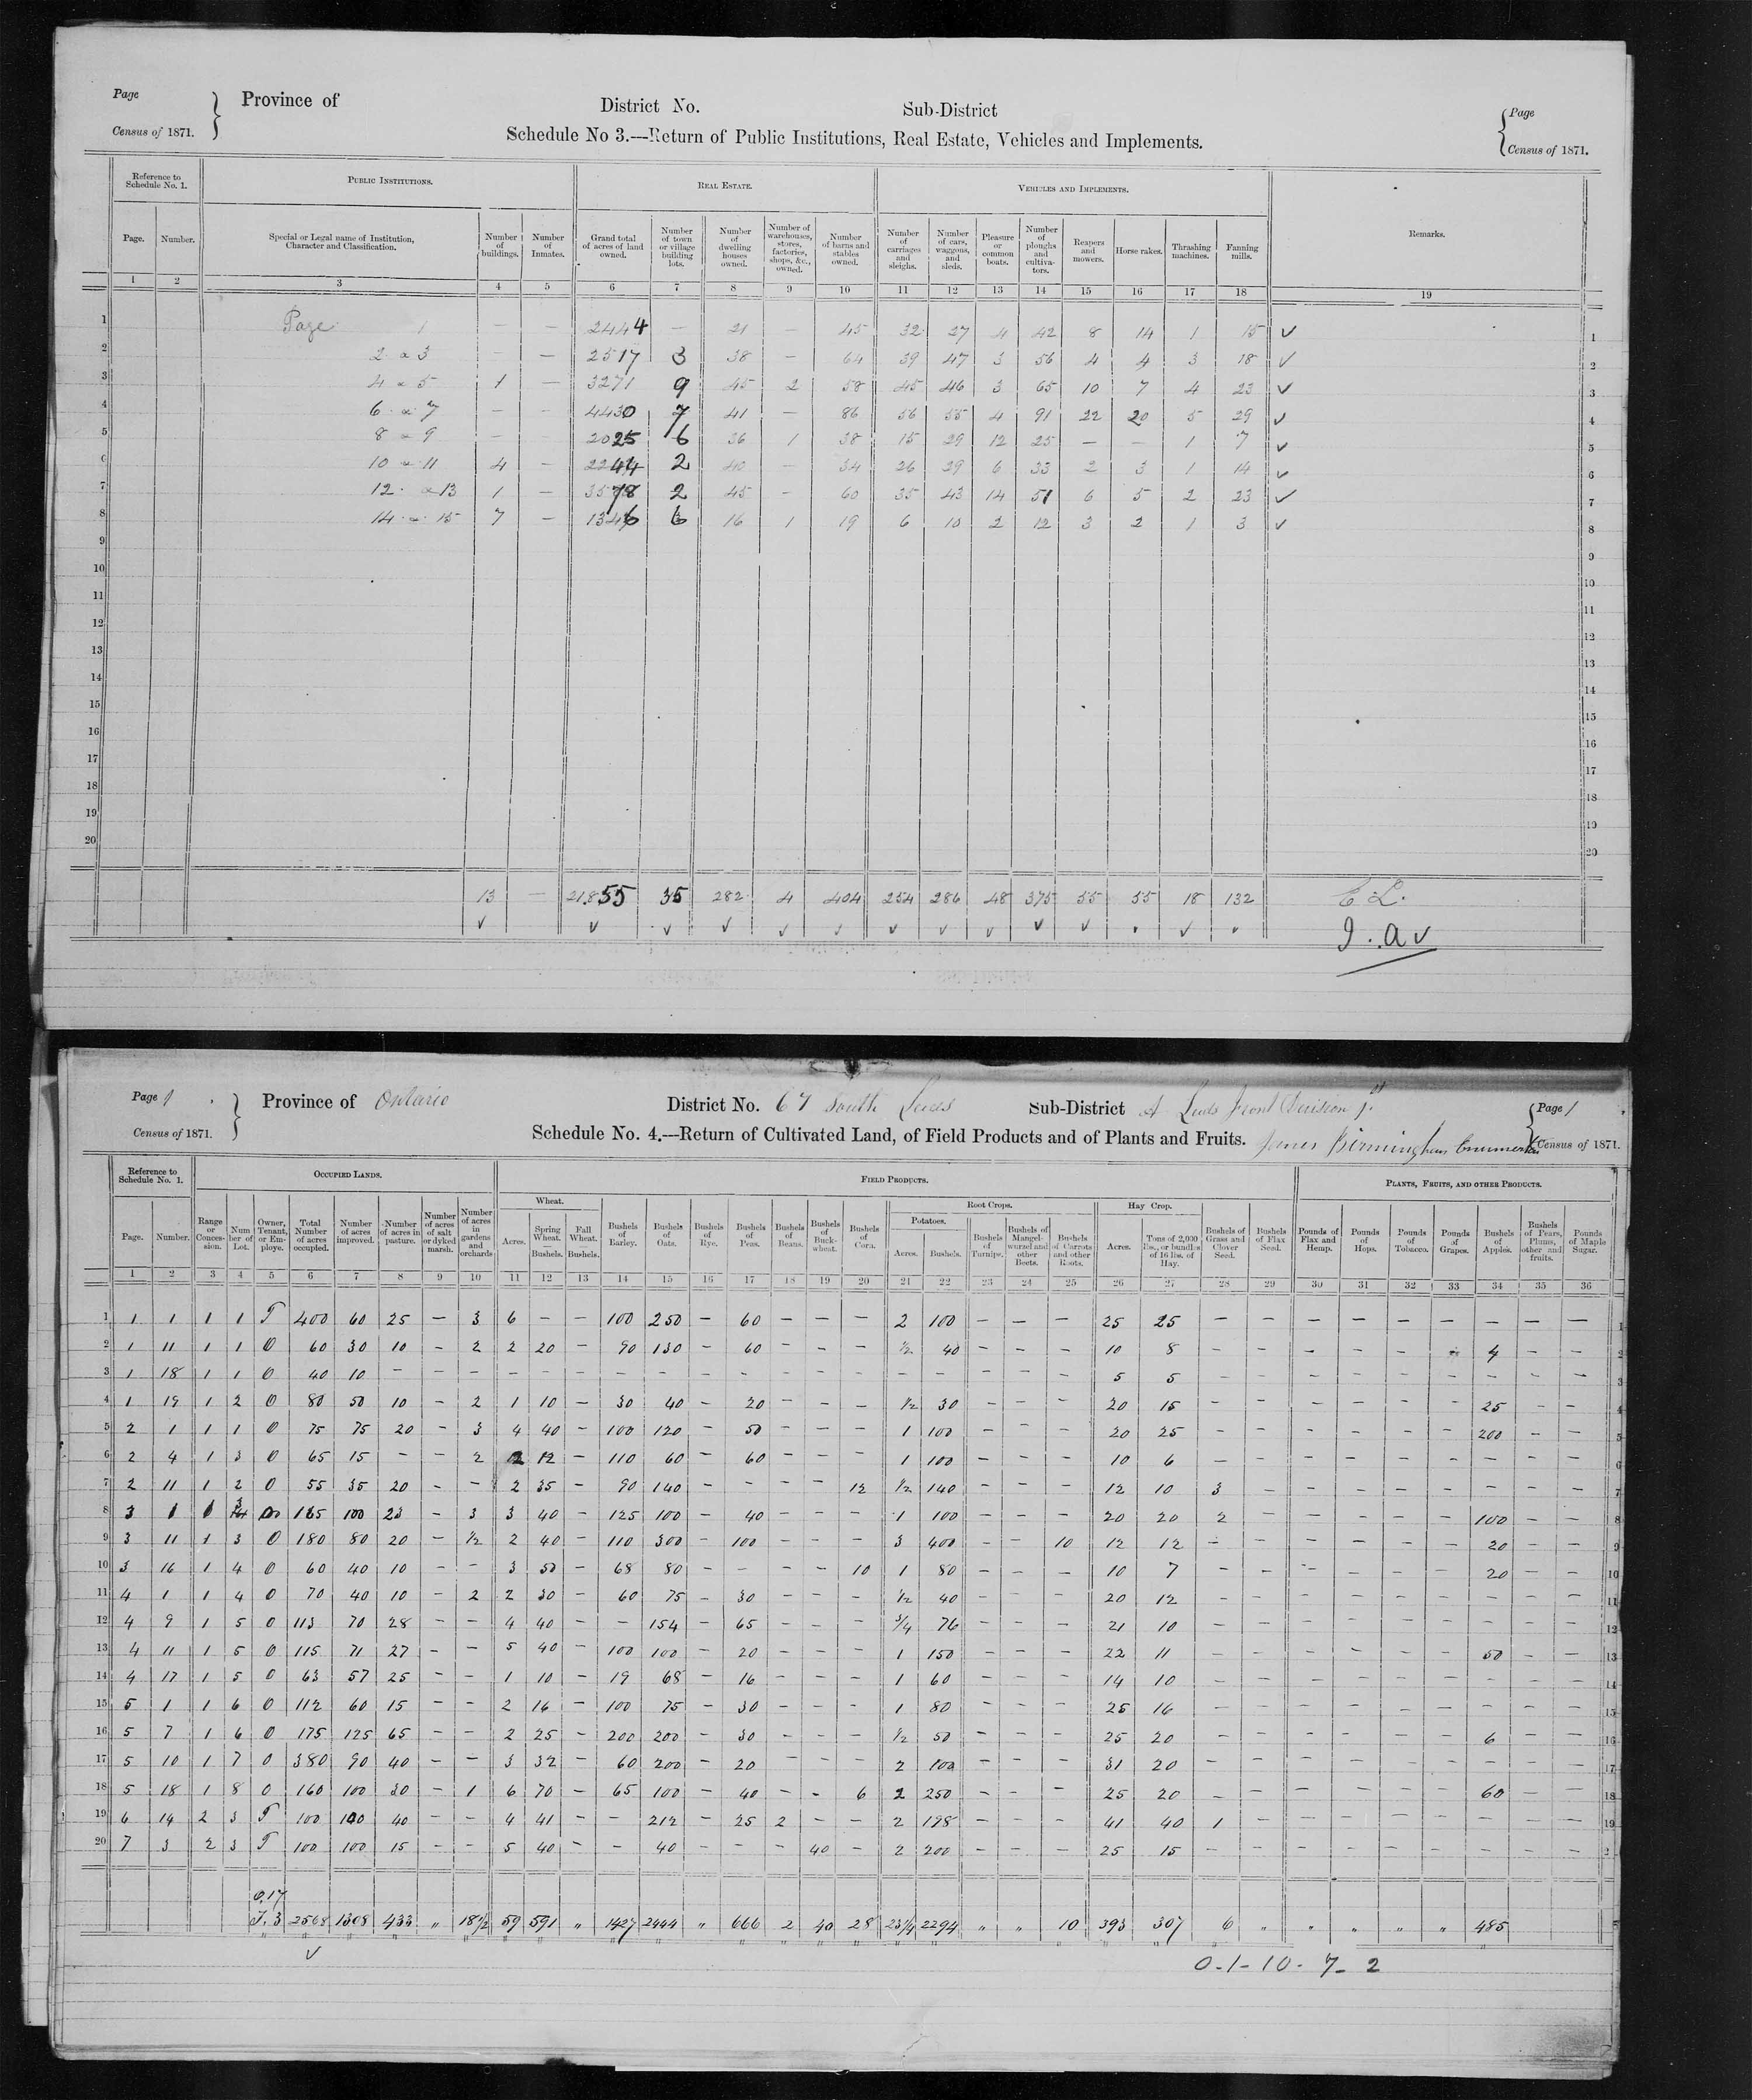 Title: Census of Canada, 1871 - Mikan Number: 142105 - Microform: c-10000